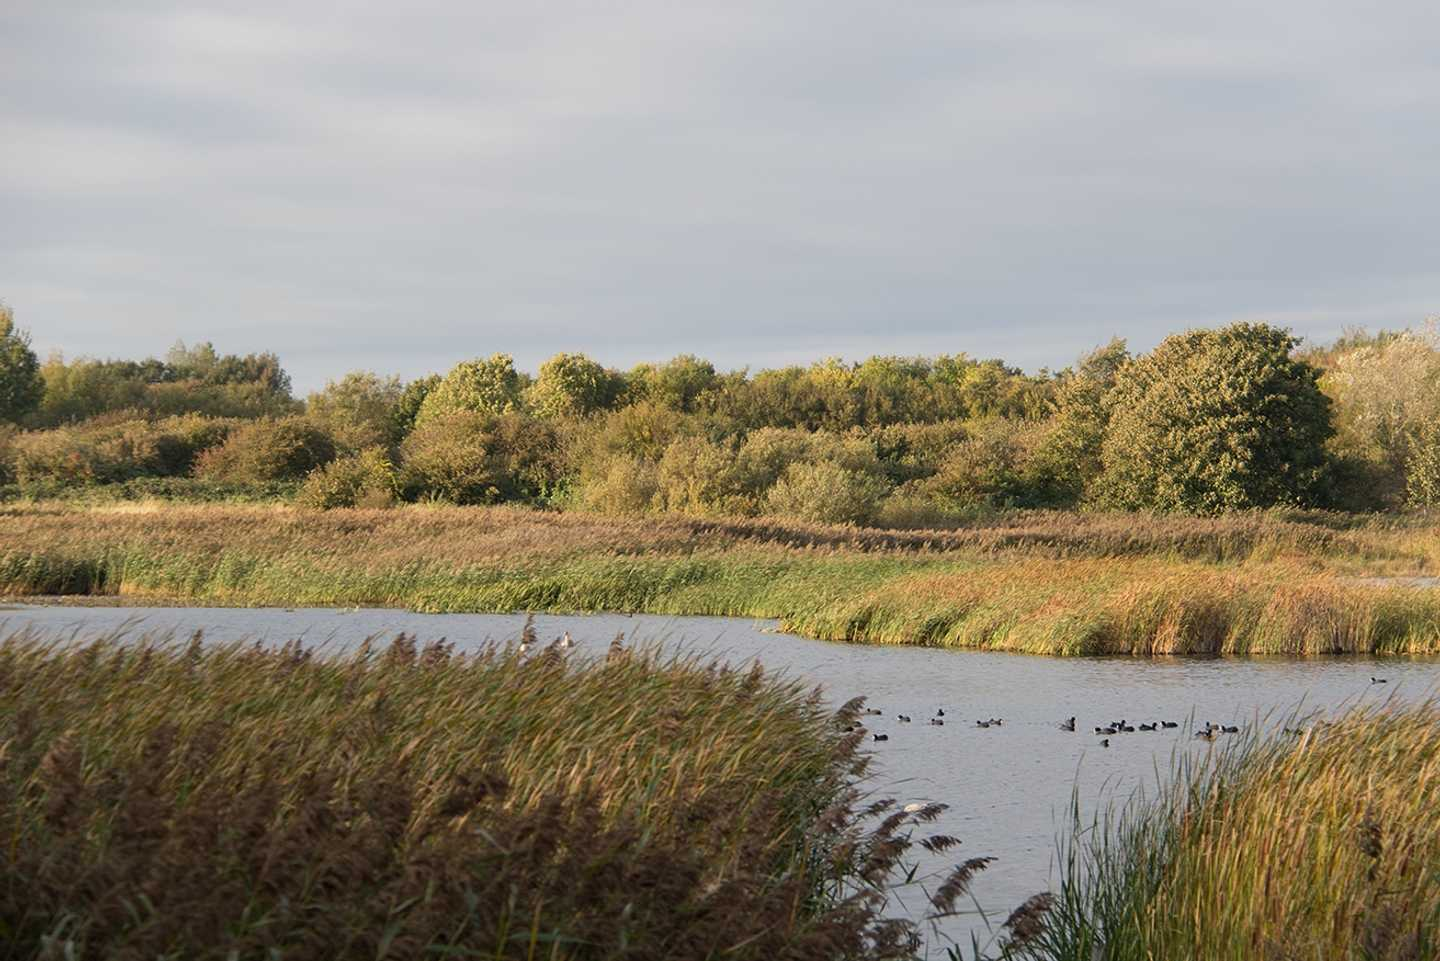 The view of Marton Mere